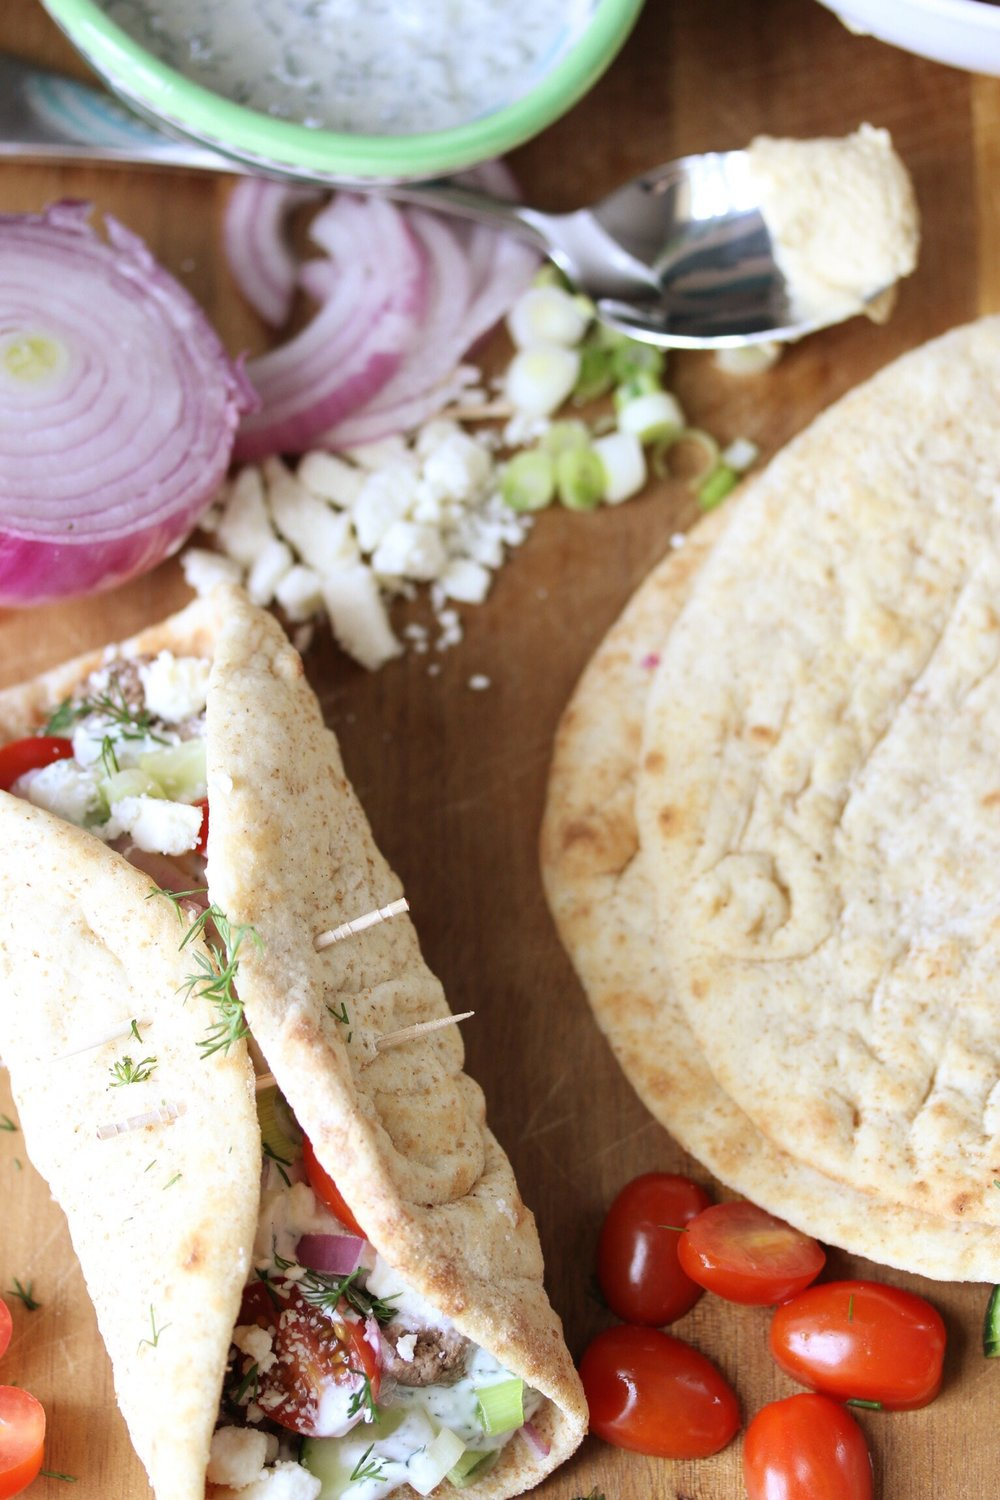 Greek pitas with lamb and tzatziki